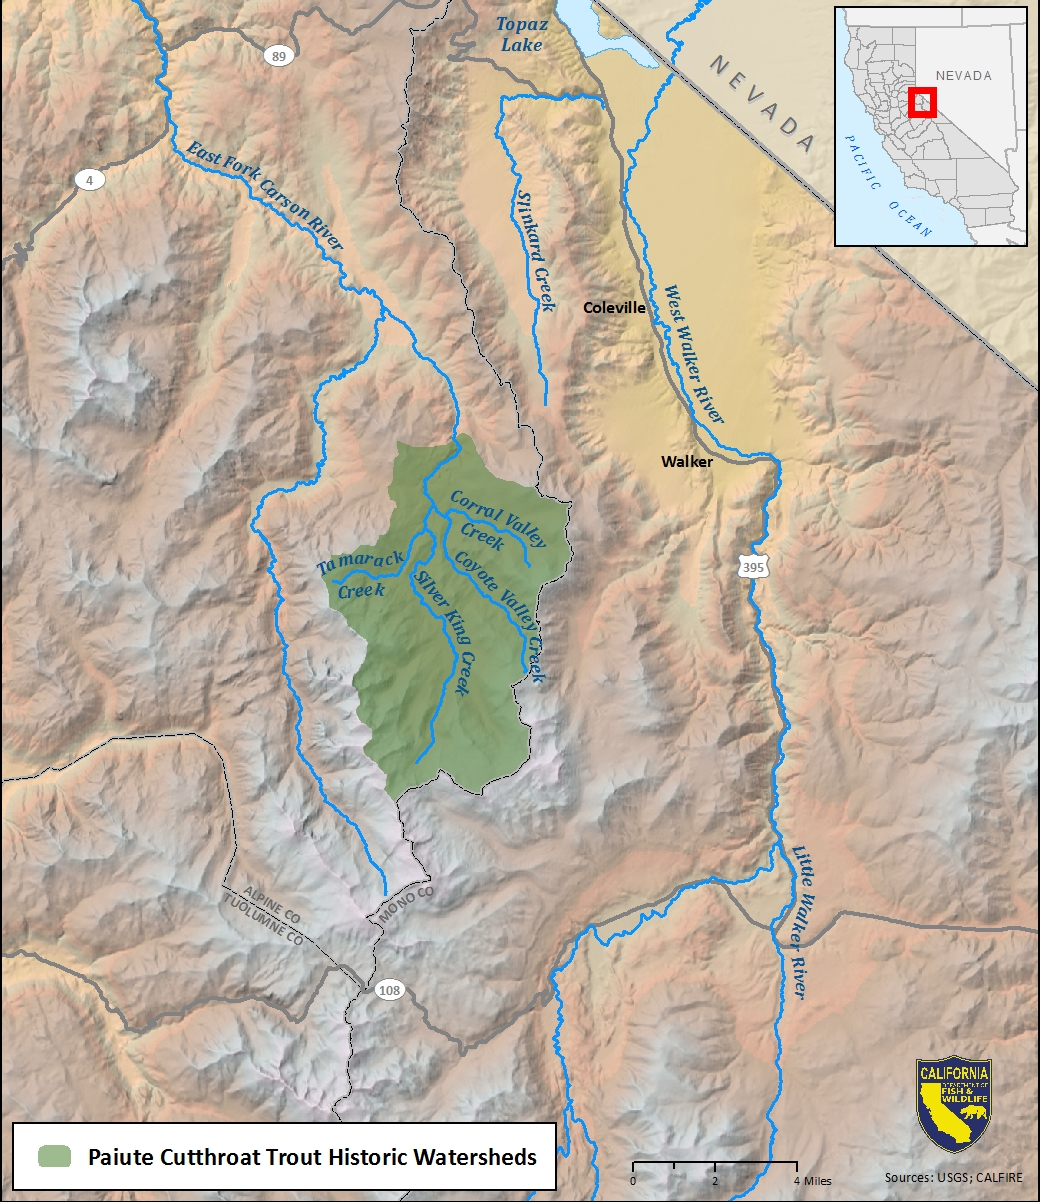 Map of Paiute cutthroat trout historic watershed - click to open in new window